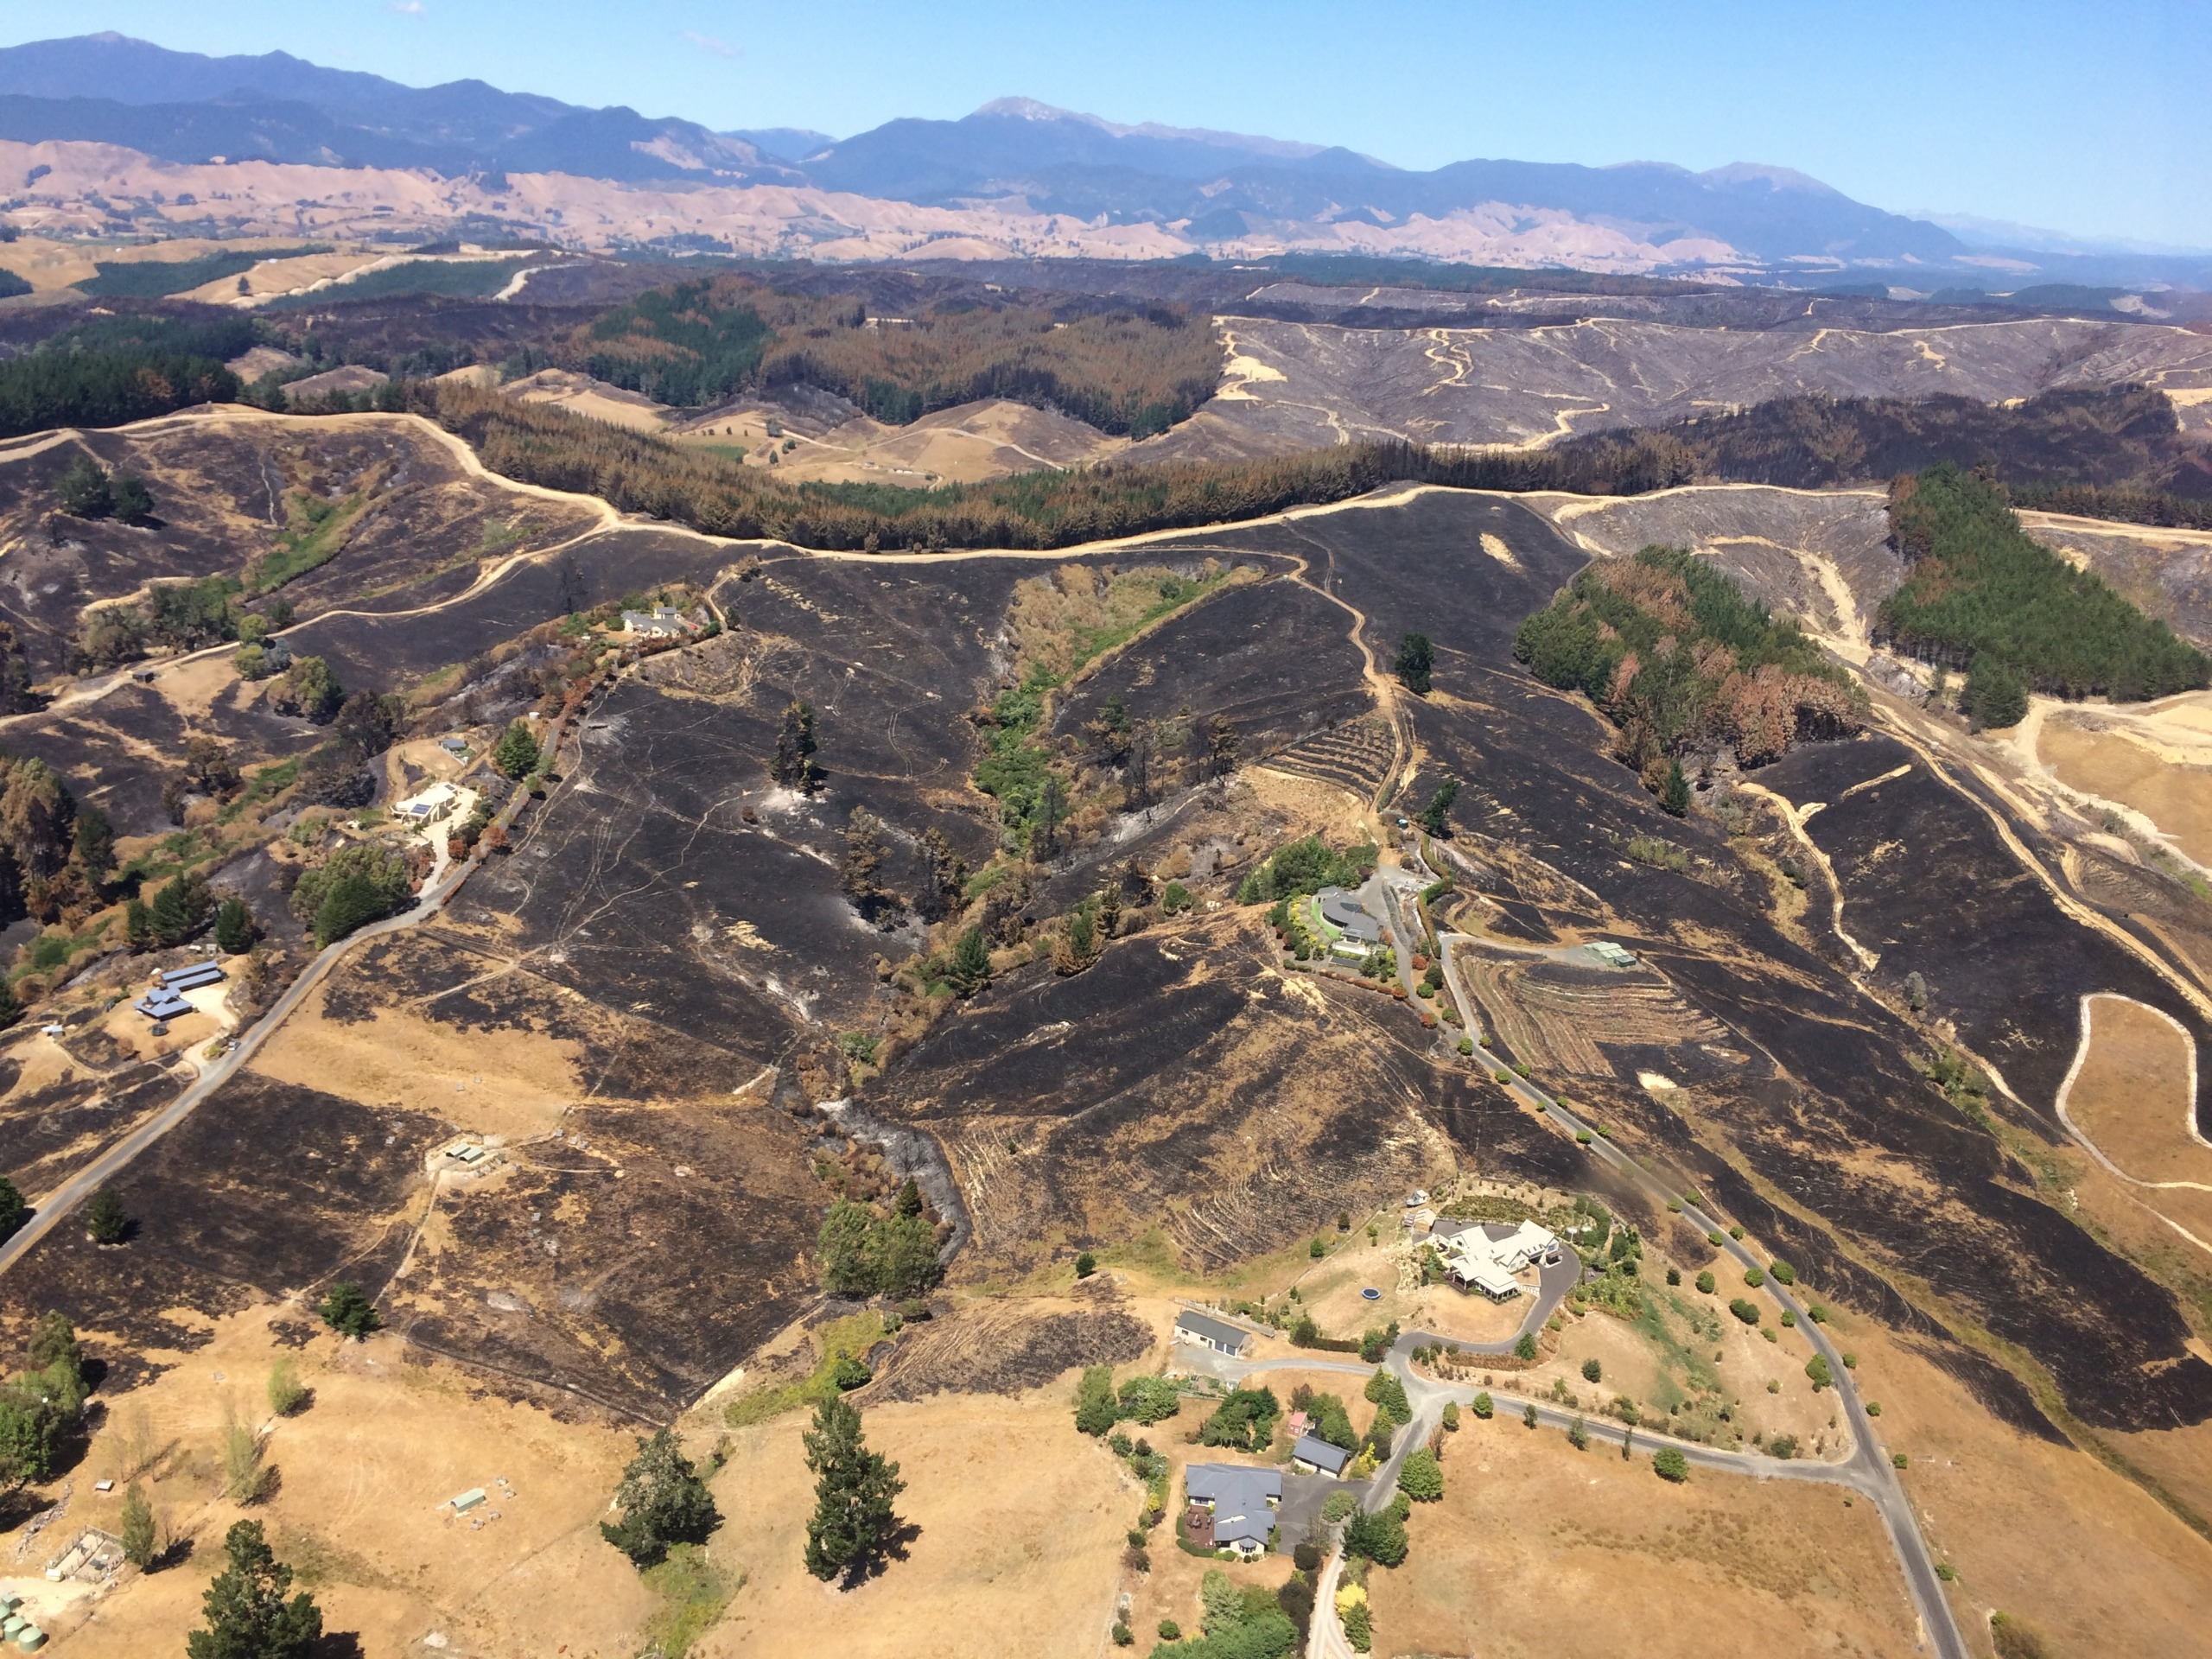 Aerial view of Pigeon Valley after the fire in February 2019